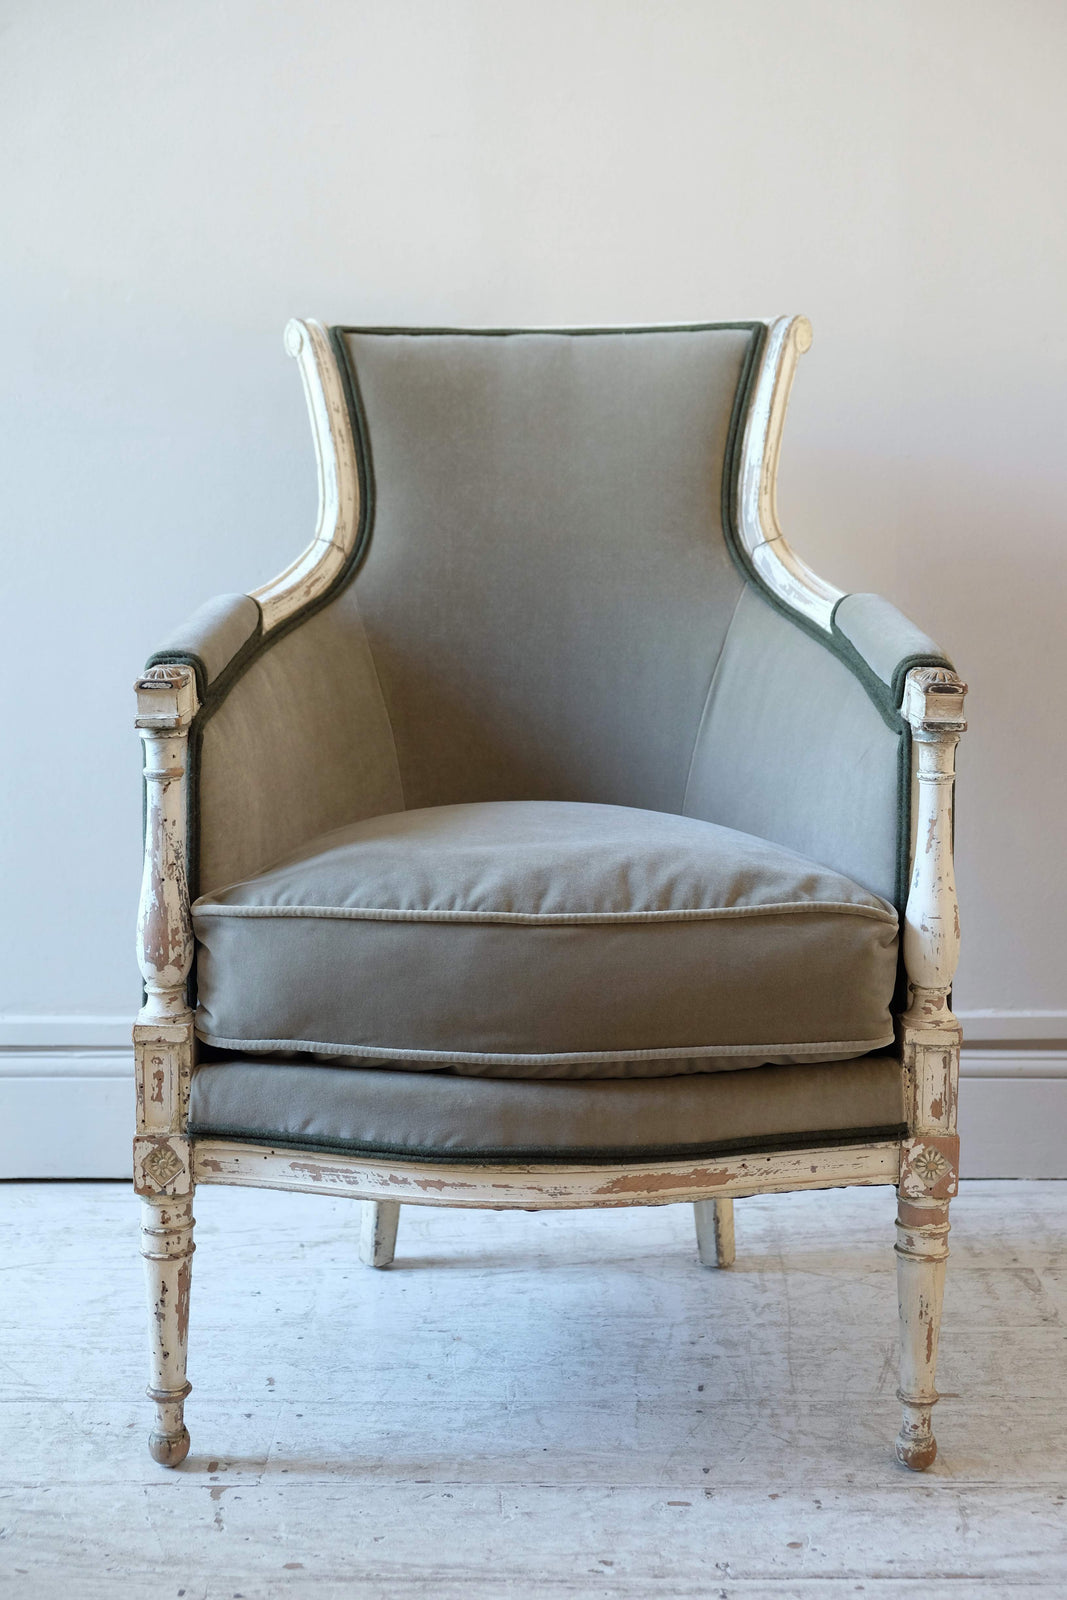 Pair of French Late 19th C. Armchairs, original paint